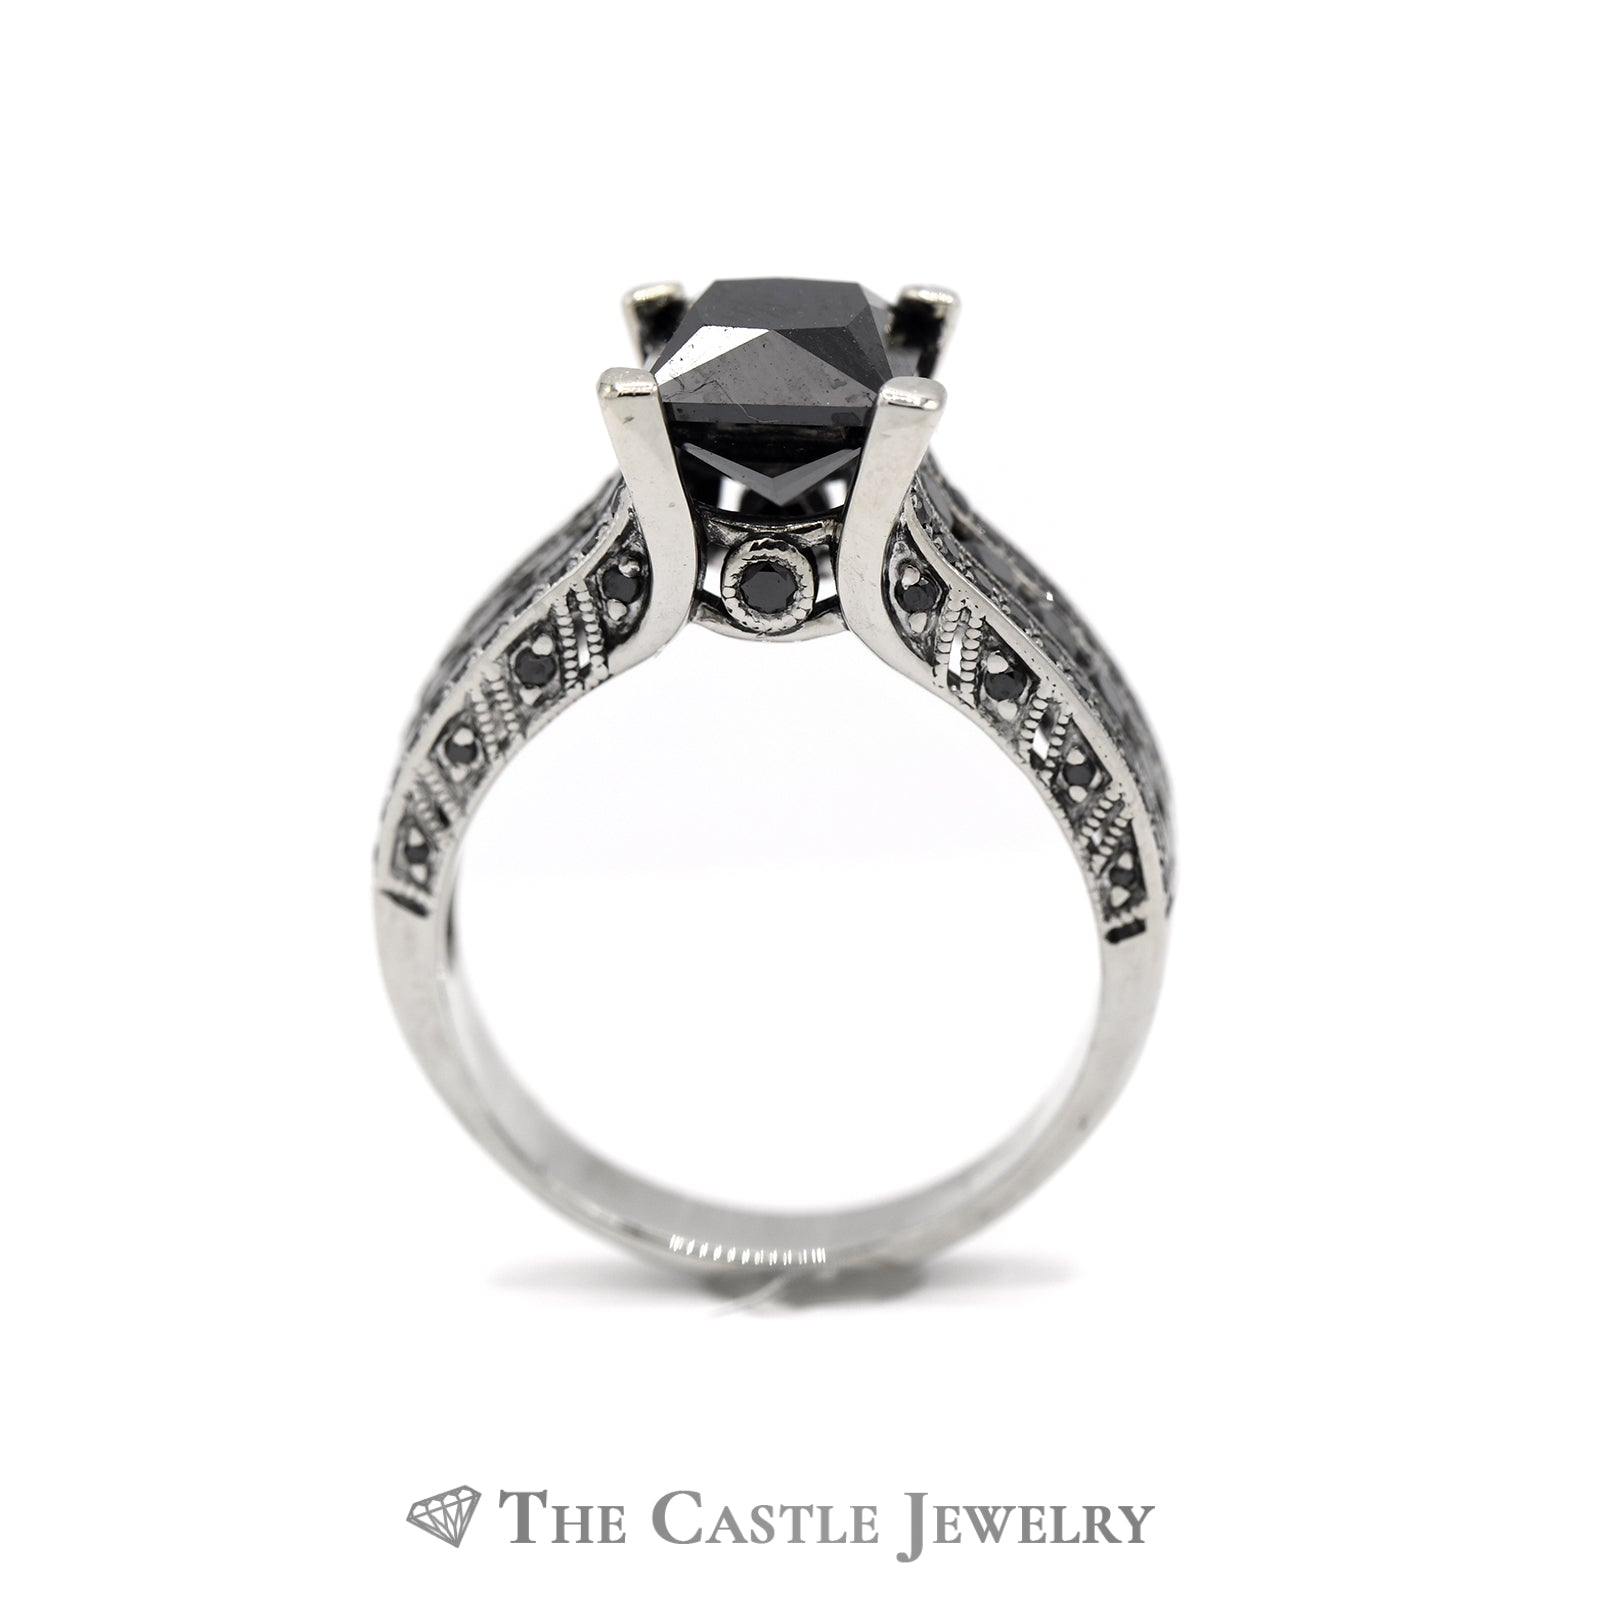 2.75cttw Square Black Diamond Engagement Ring with Black Diamond Accents in 14k White Gold-1